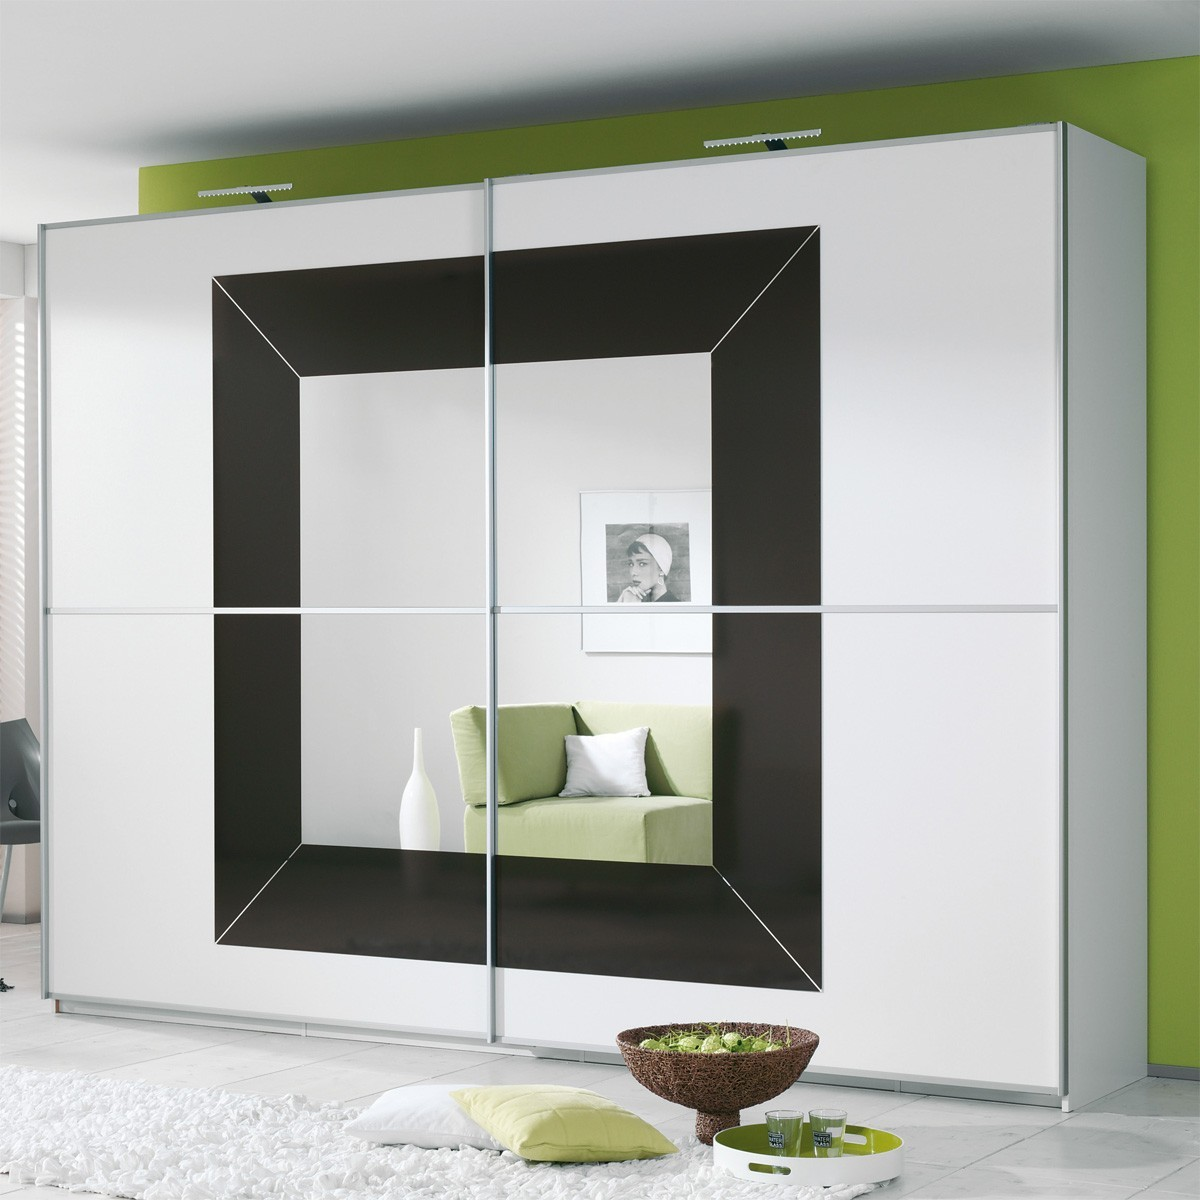 kleiderschrank wei hochglanz schiebet r. Black Bedroom Furniture Sets. Home Design Ideas